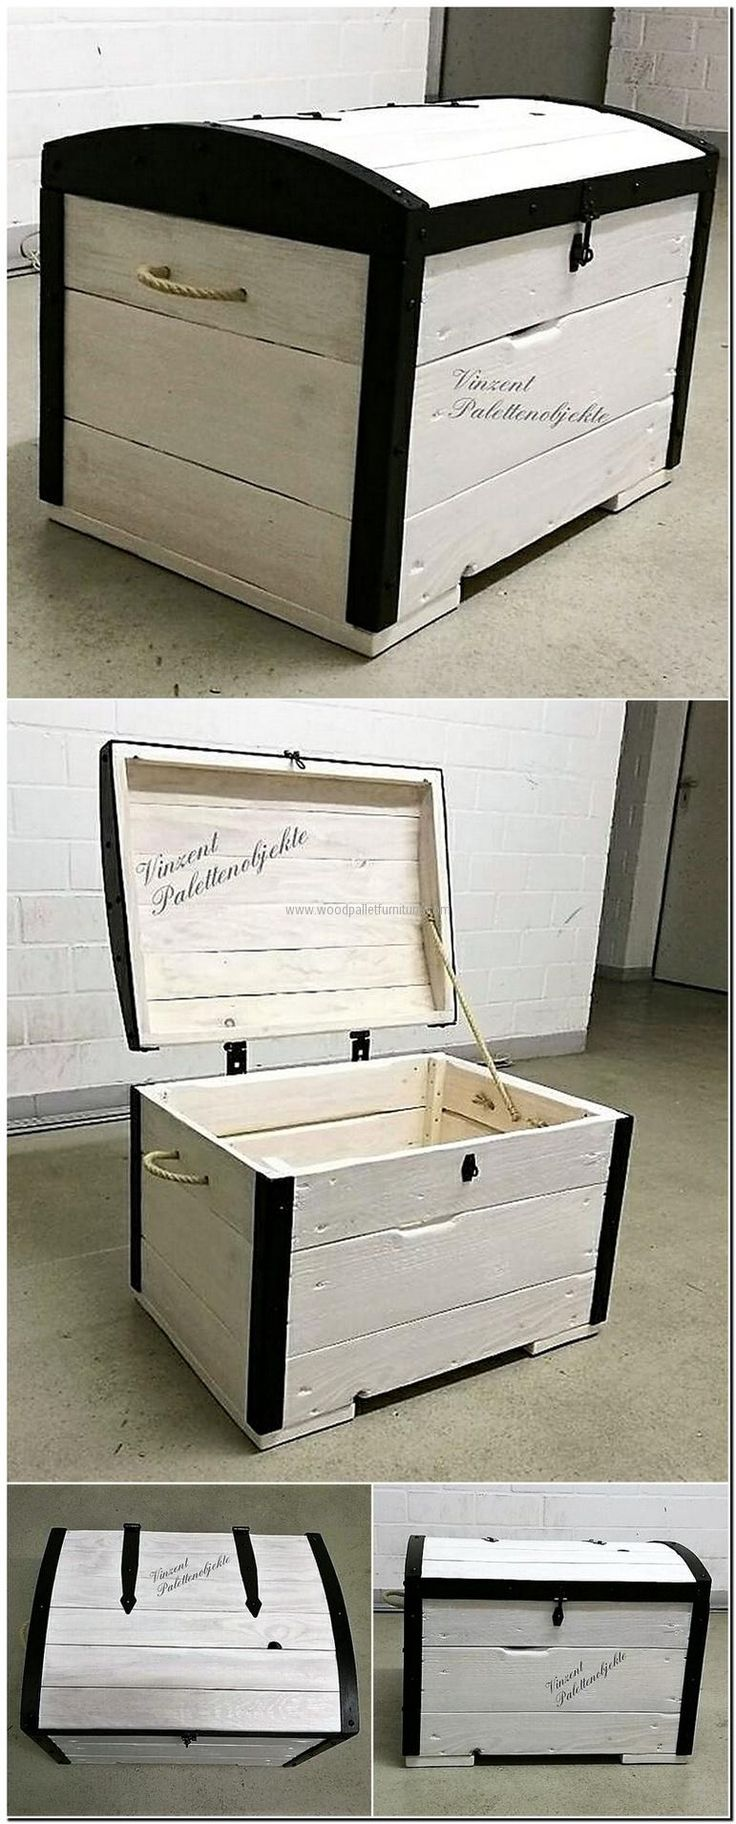 A chest box should be attractive and should be designed with a weird style because there is no place to hide it in most of the homes, it stays visible to everyone. An appealing chest box can be placed anywhere in the home as a decoration piece, so here is an attractive idea to create a chest box, which doesn't give bad look.